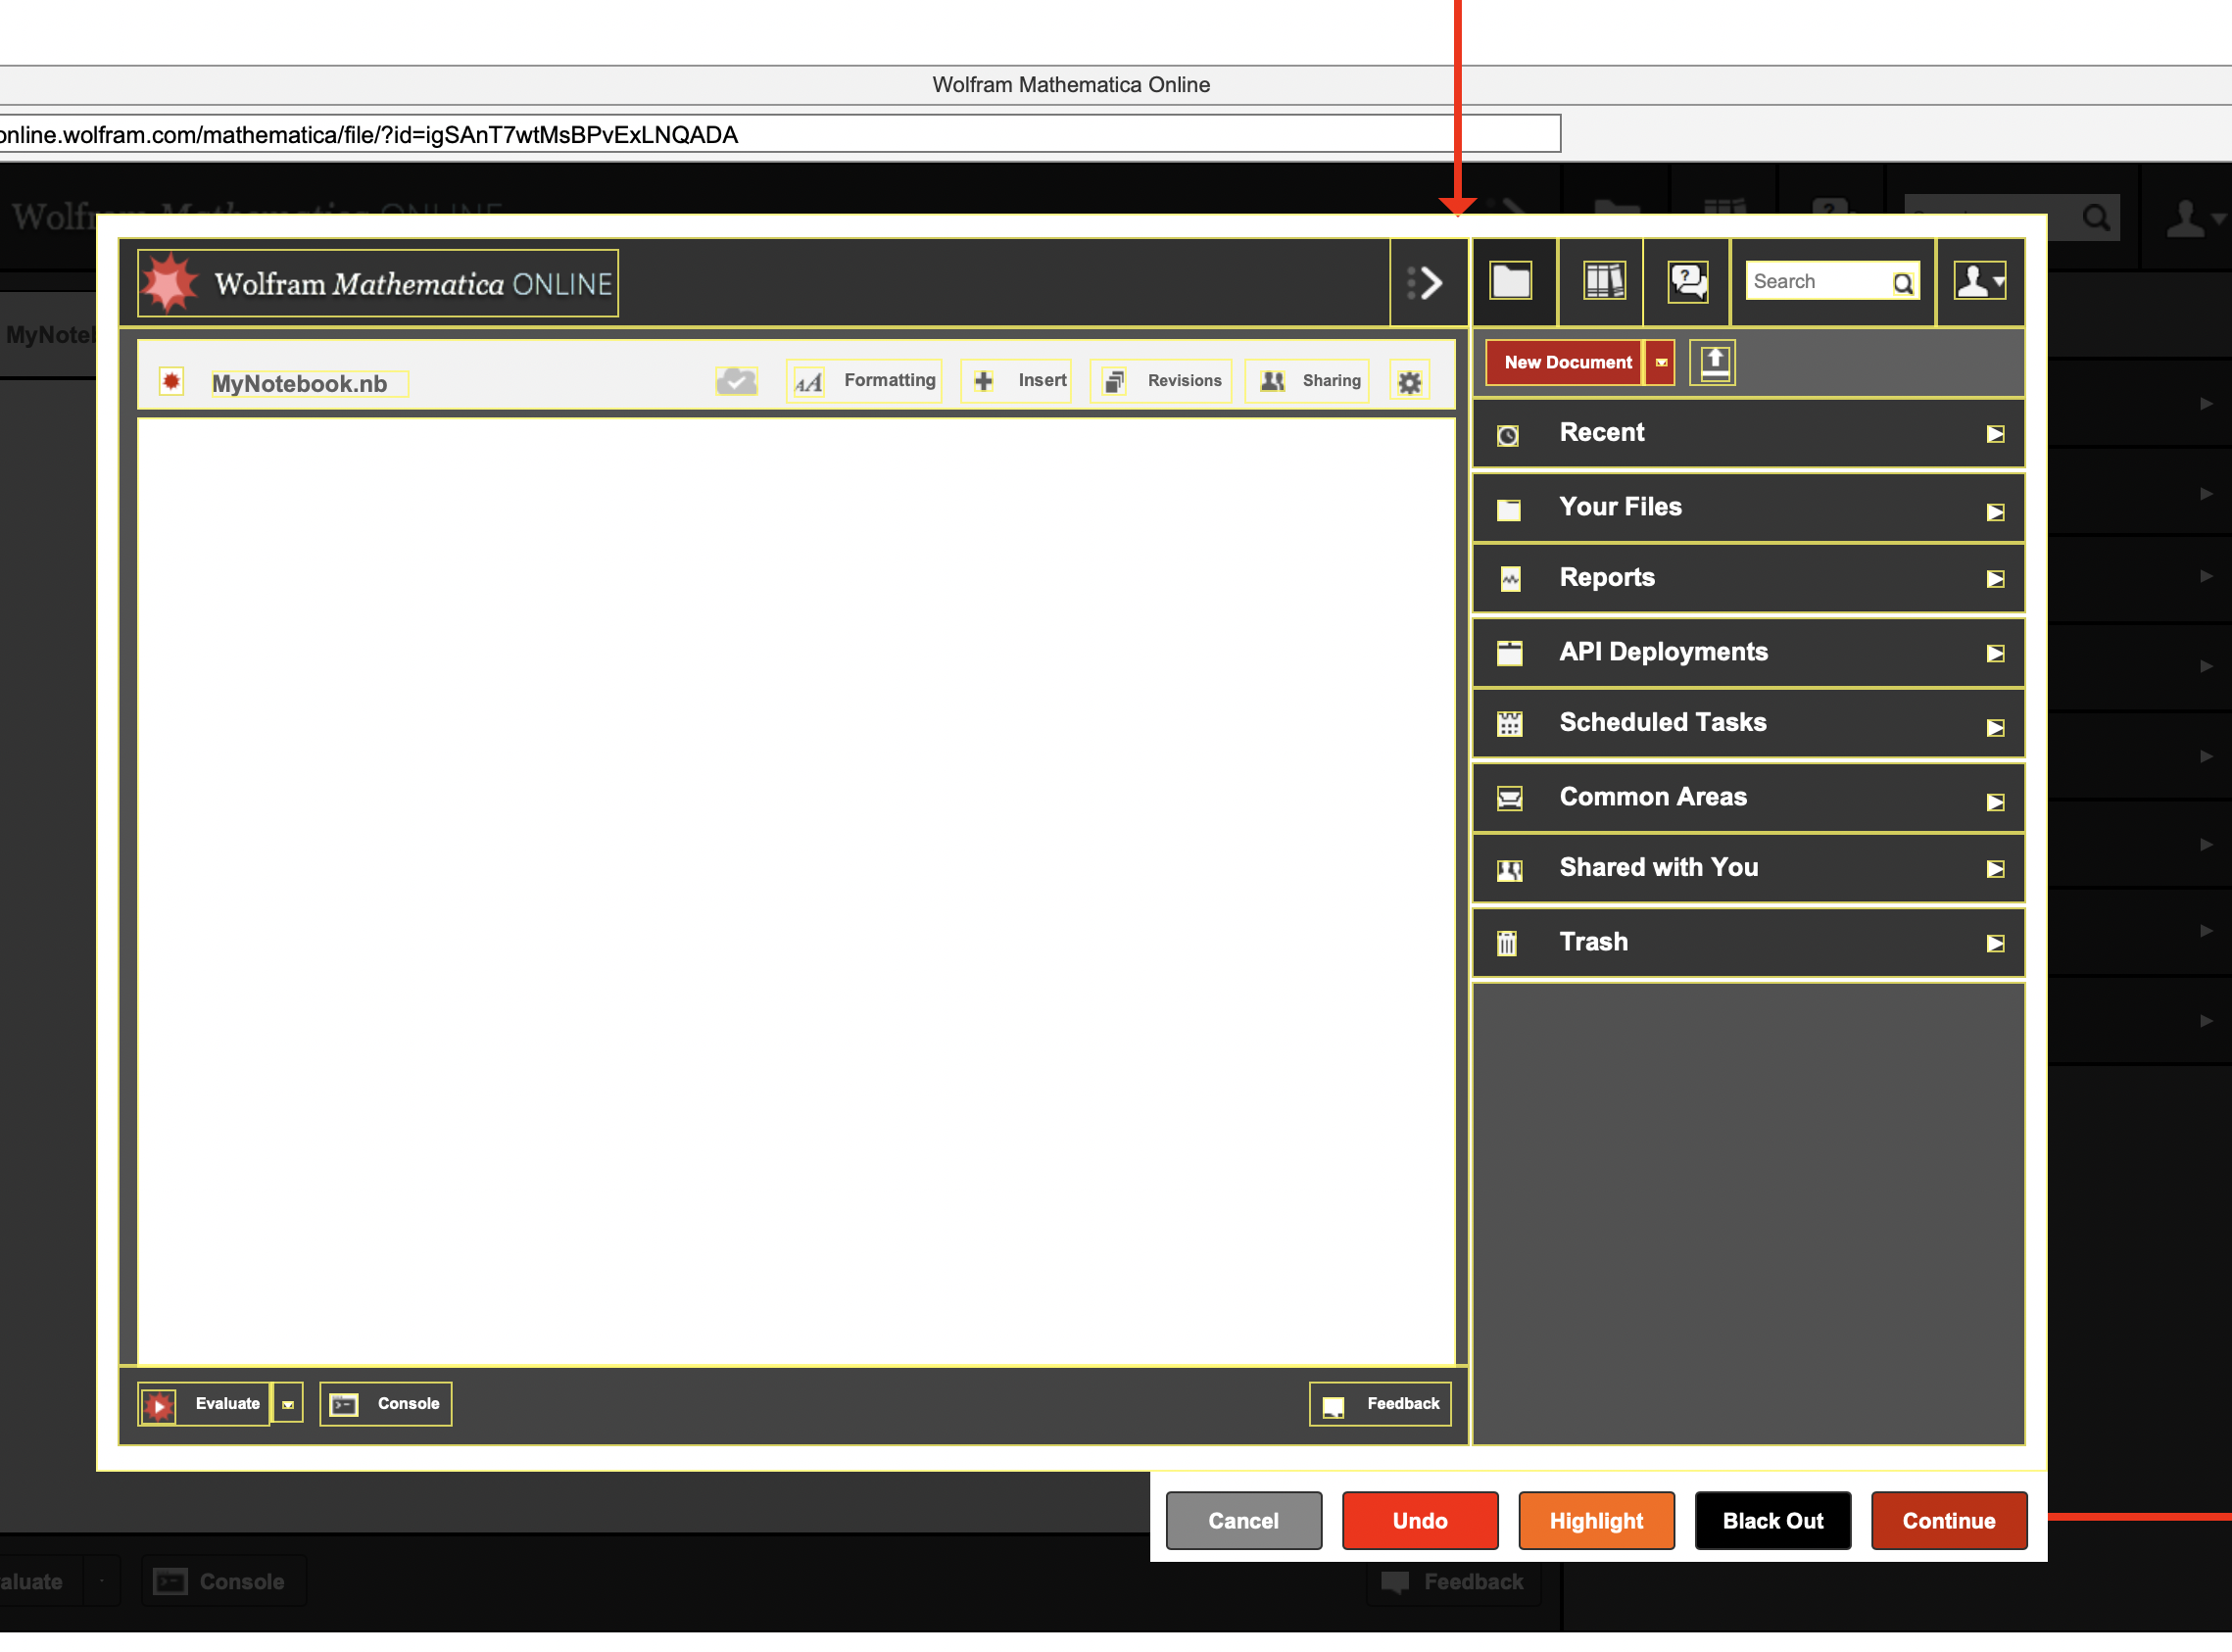 part 3 of wireframe screenshot of flow of feedback interaction prototype for Wolfram Cloud Platform/Mathematica Online